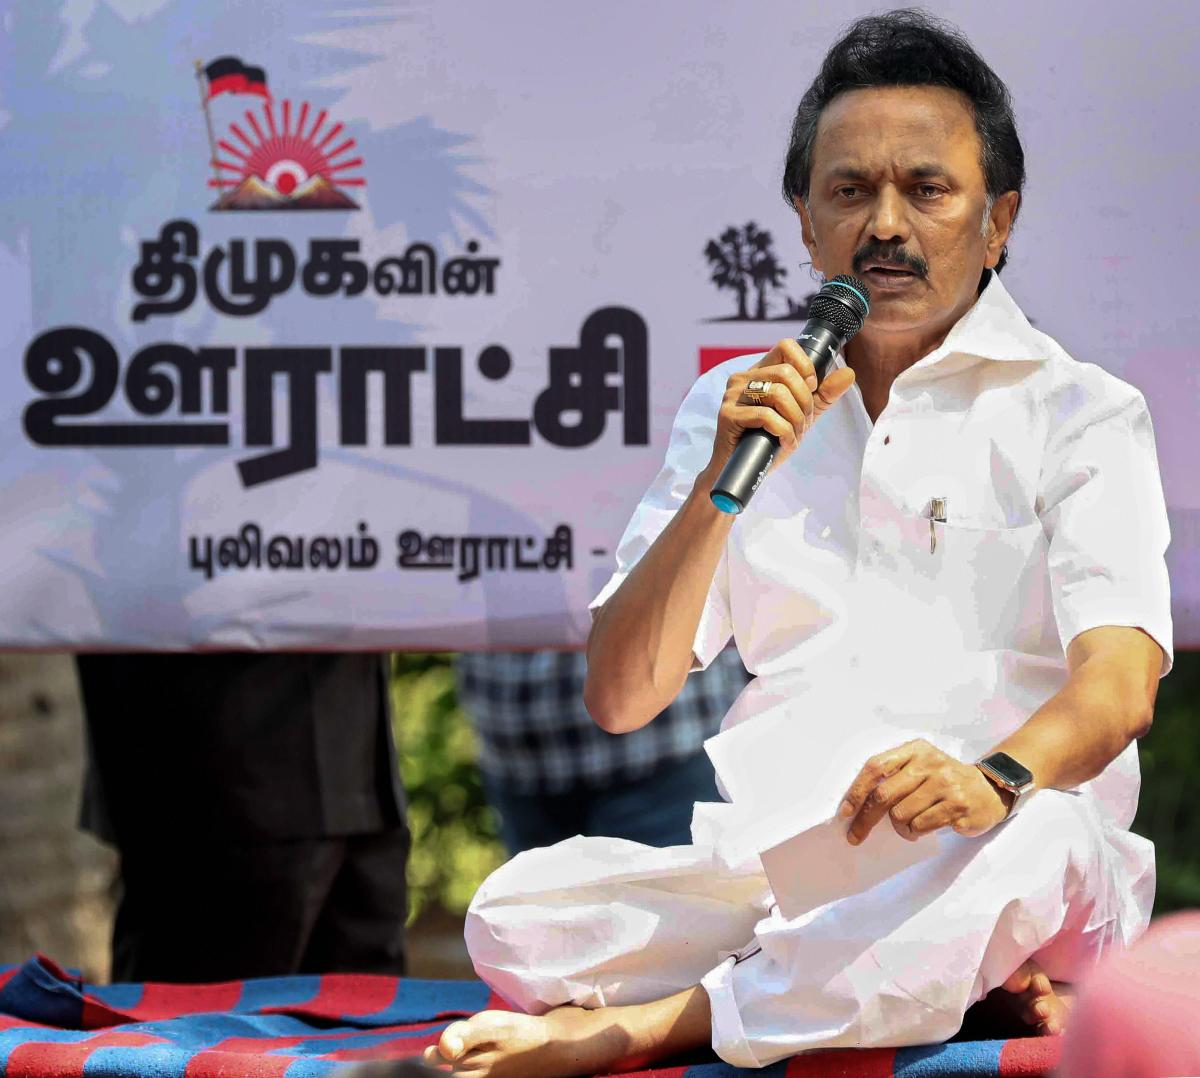 """DMK will never ally with the Narendra Modi-led Bharatiya Janata Party (BJP) which has """"dumped"""" the principles of social justice, secularism, equality and federalism in its last 4.5 years of rule at the Centre, party president M K Stalin said here on Friday. PTI photo"""